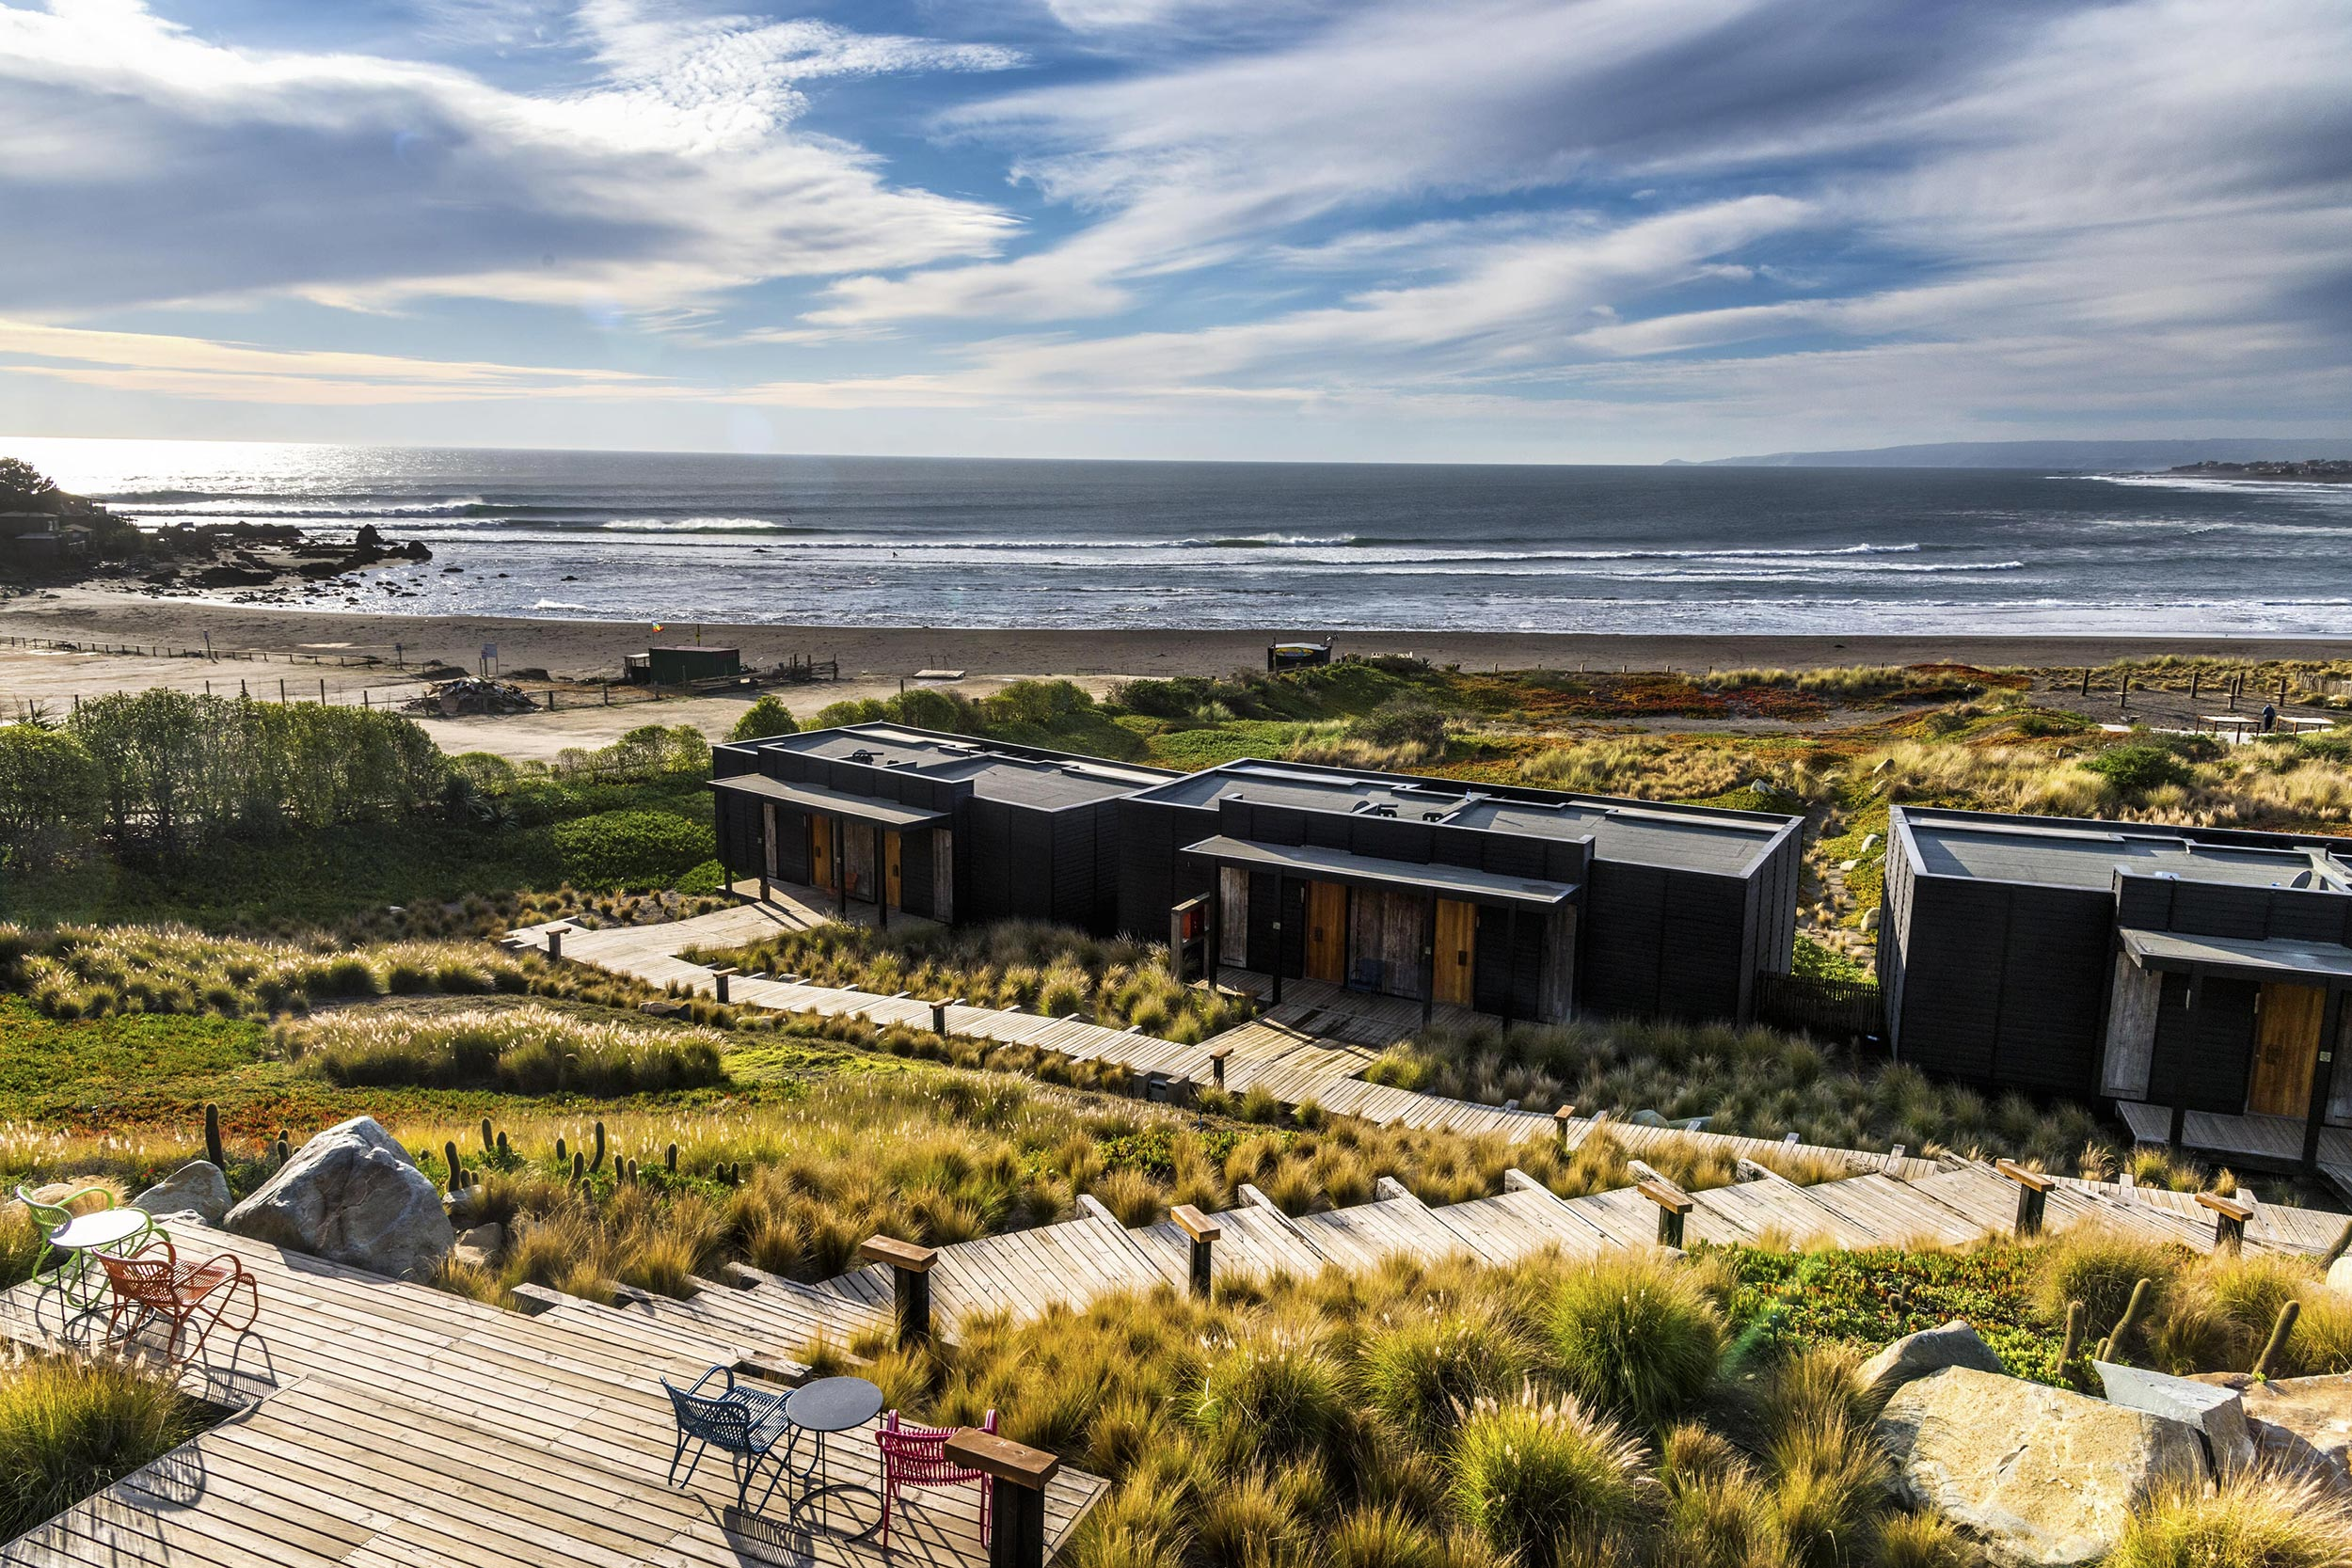 Hotel Alaia blends into the natural surroundings of Punta de Lobos.